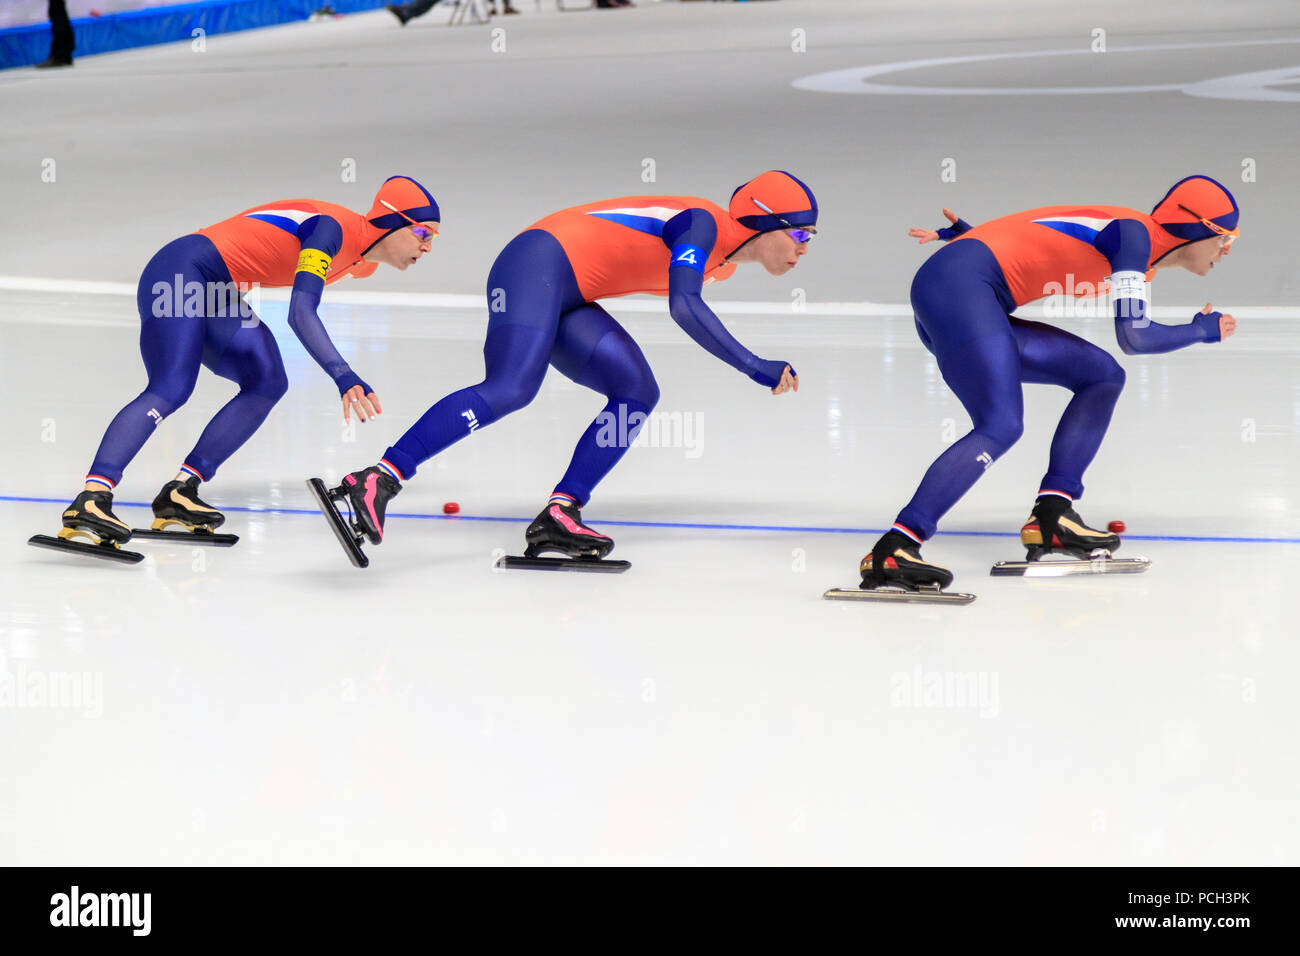 Dutch women Marrit Leenstra #1, Ireen Wuest #3, Antoinette de Jong #4 in the speed skating ladies team pursuit quarterfinals at the Olympic Winter Gam - Stock Image